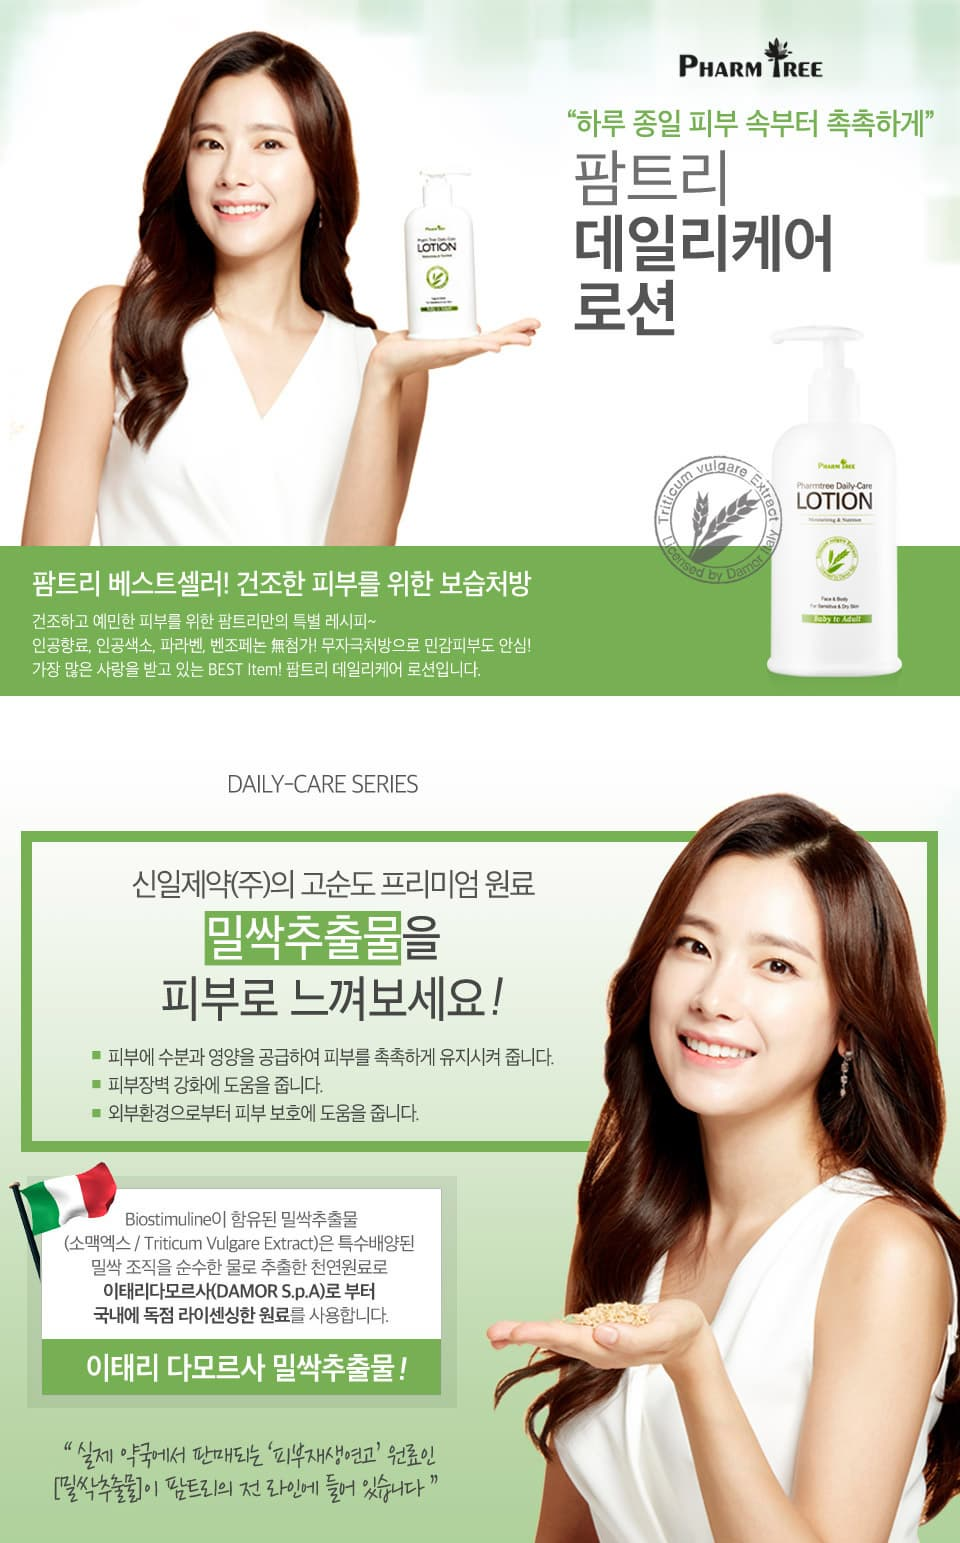 skincare_ Pharm Tree Daily_Care Lotion